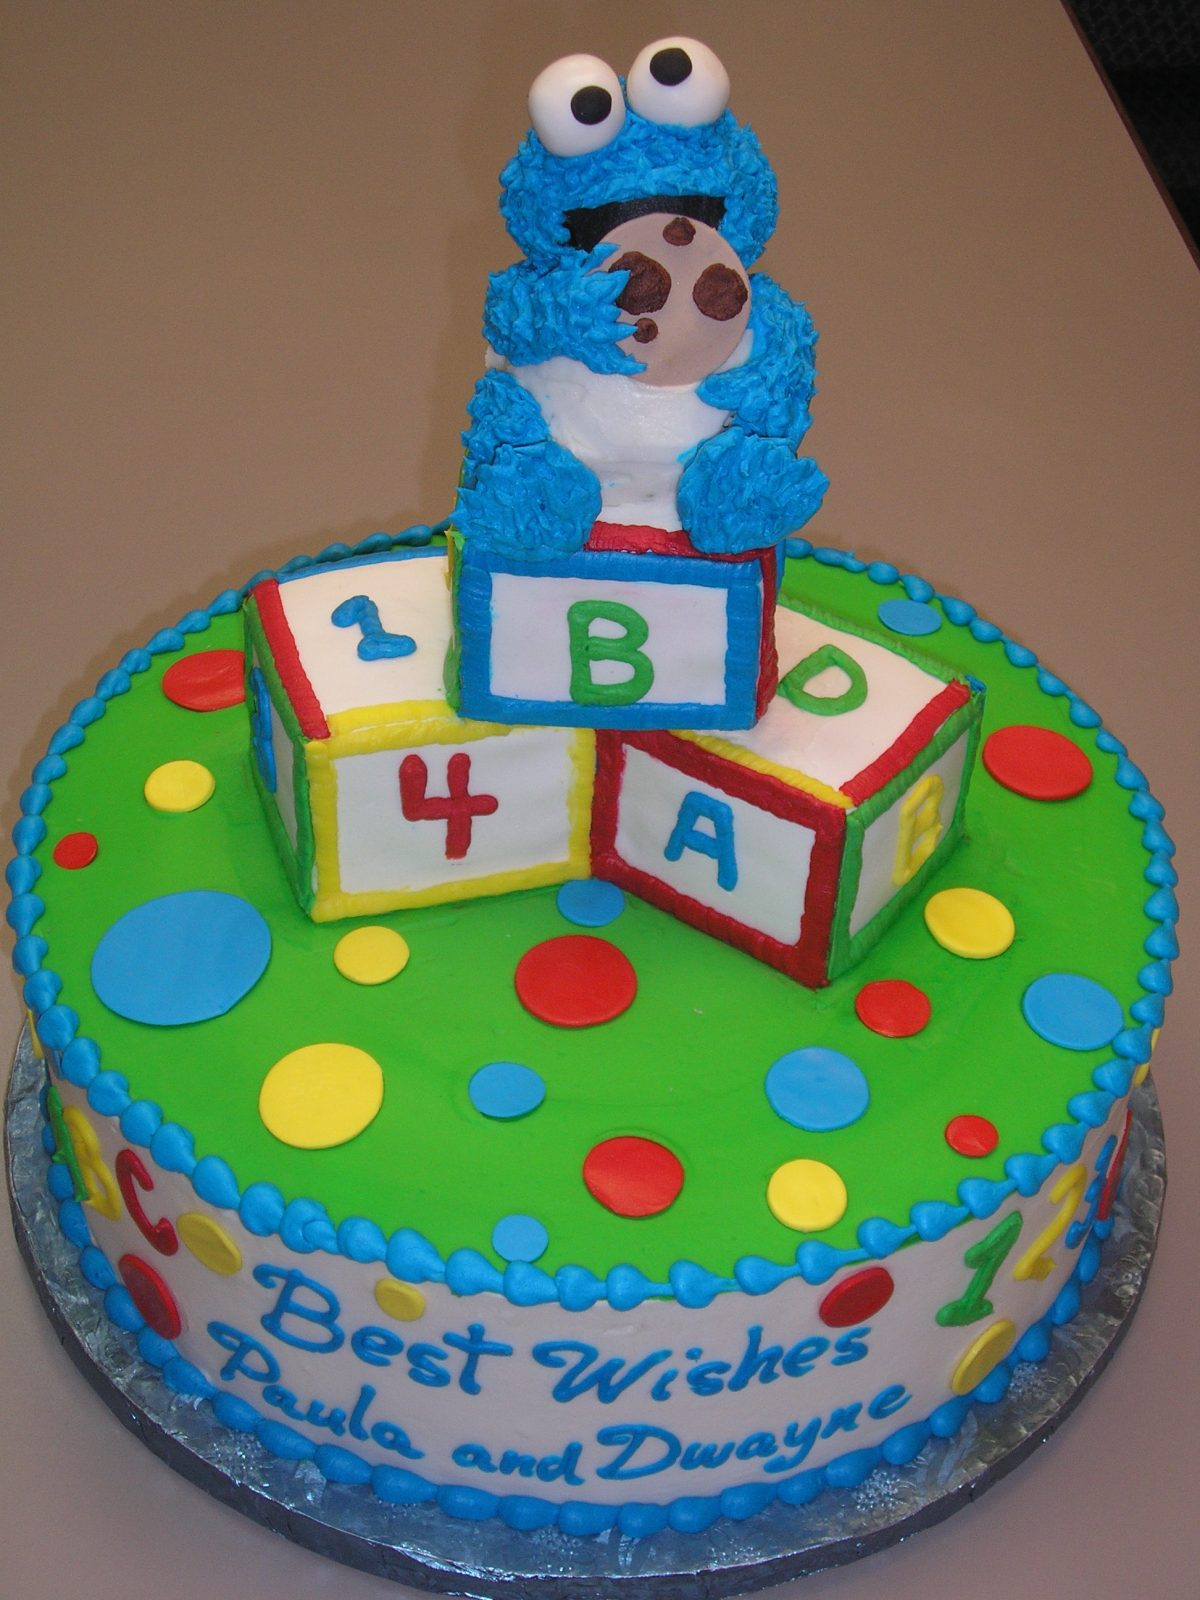 3D cookie monster cake, 3D building block cake